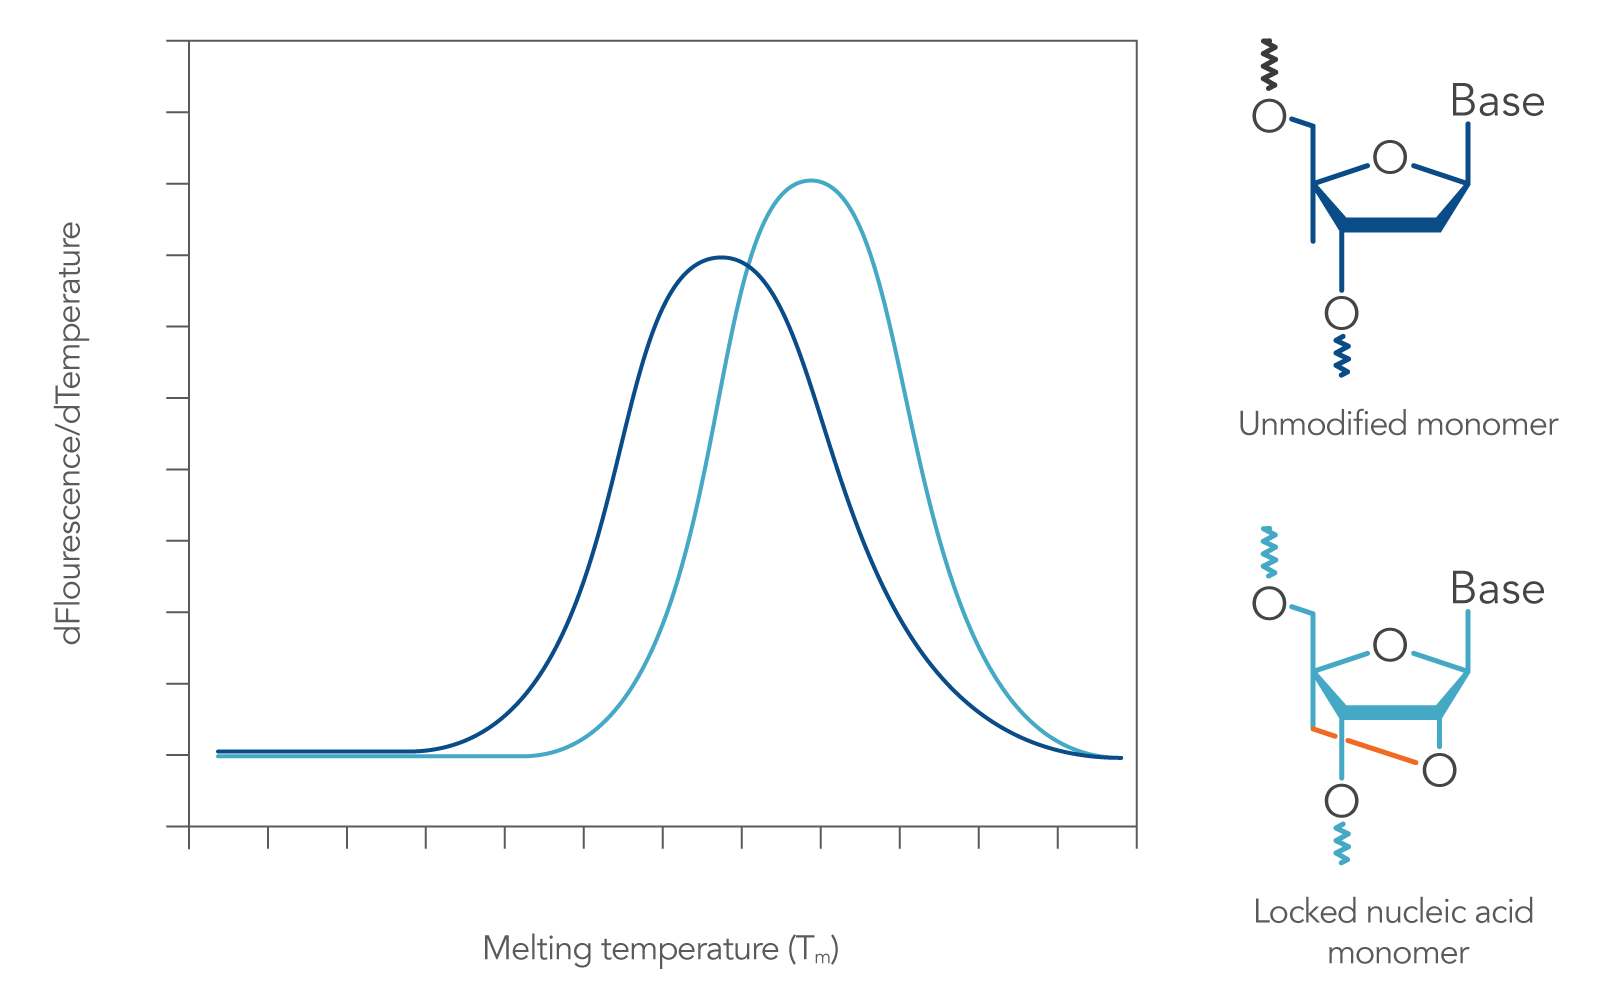 Locked nucleic acid bases increase sequence melting temperature